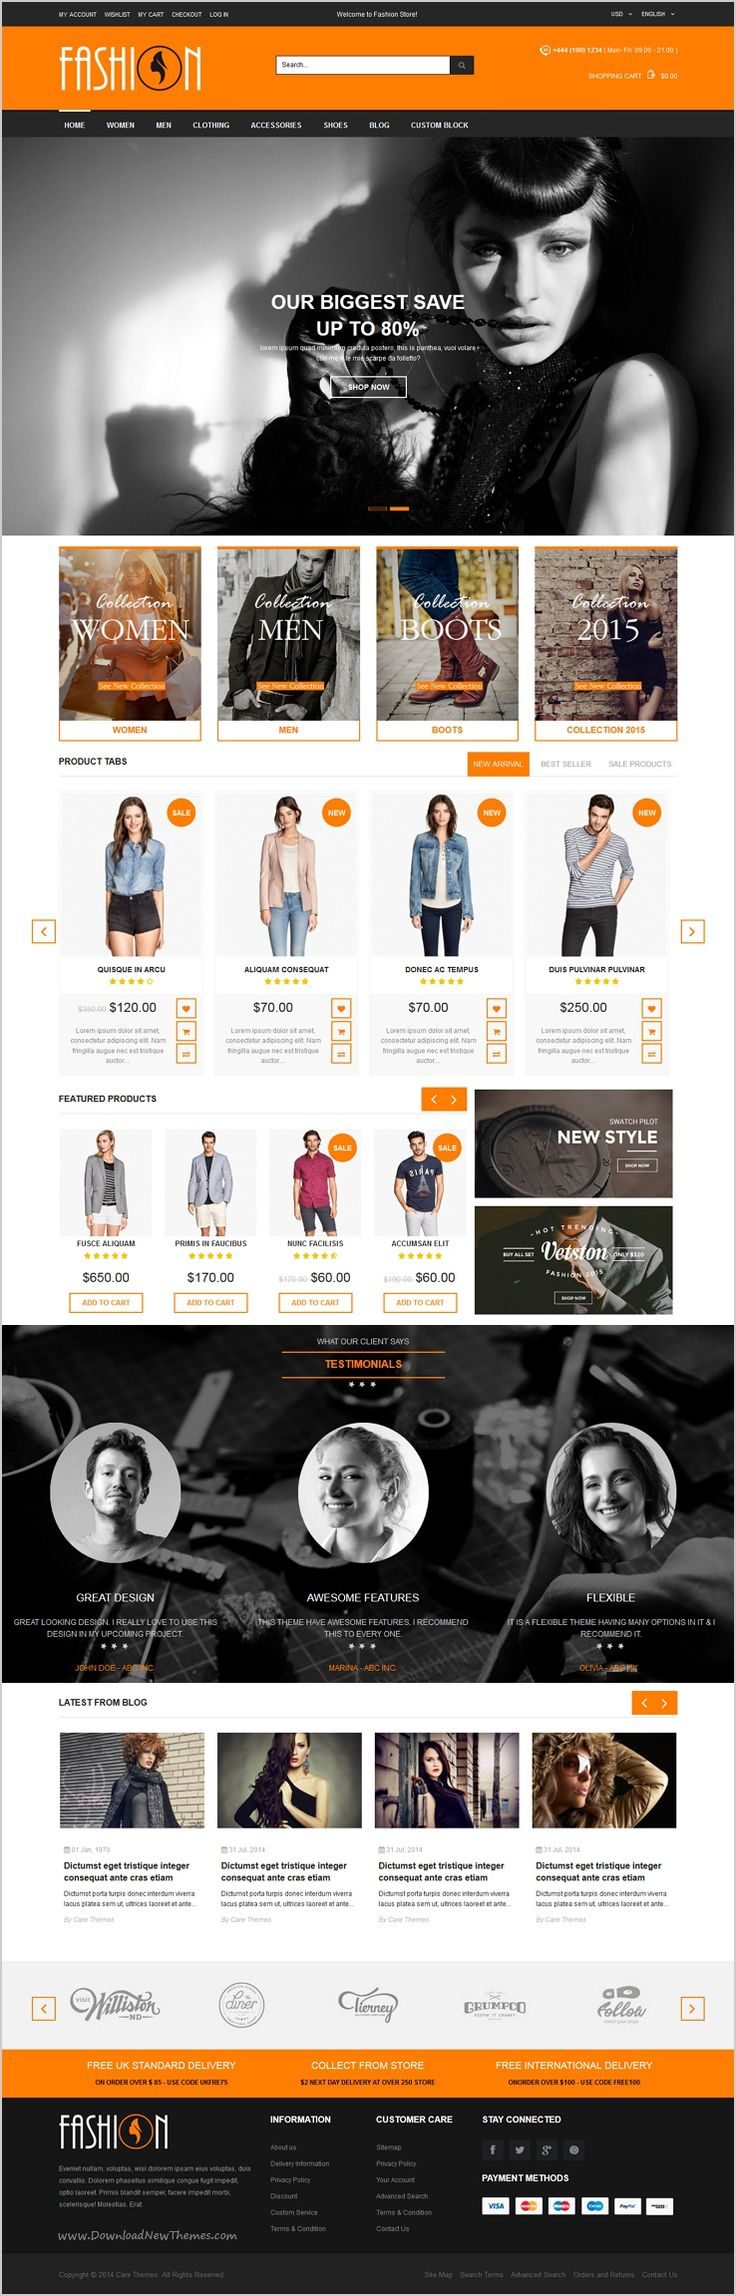 Fashion is a unique and attractive design #Magento #theme for multipurpose #eCommerce website with great features download now➯ https://themeforest.net/item/the-forest-law-psd-template-for-law-firm-lawyer-and-attorney/17120073?ref=Datasata